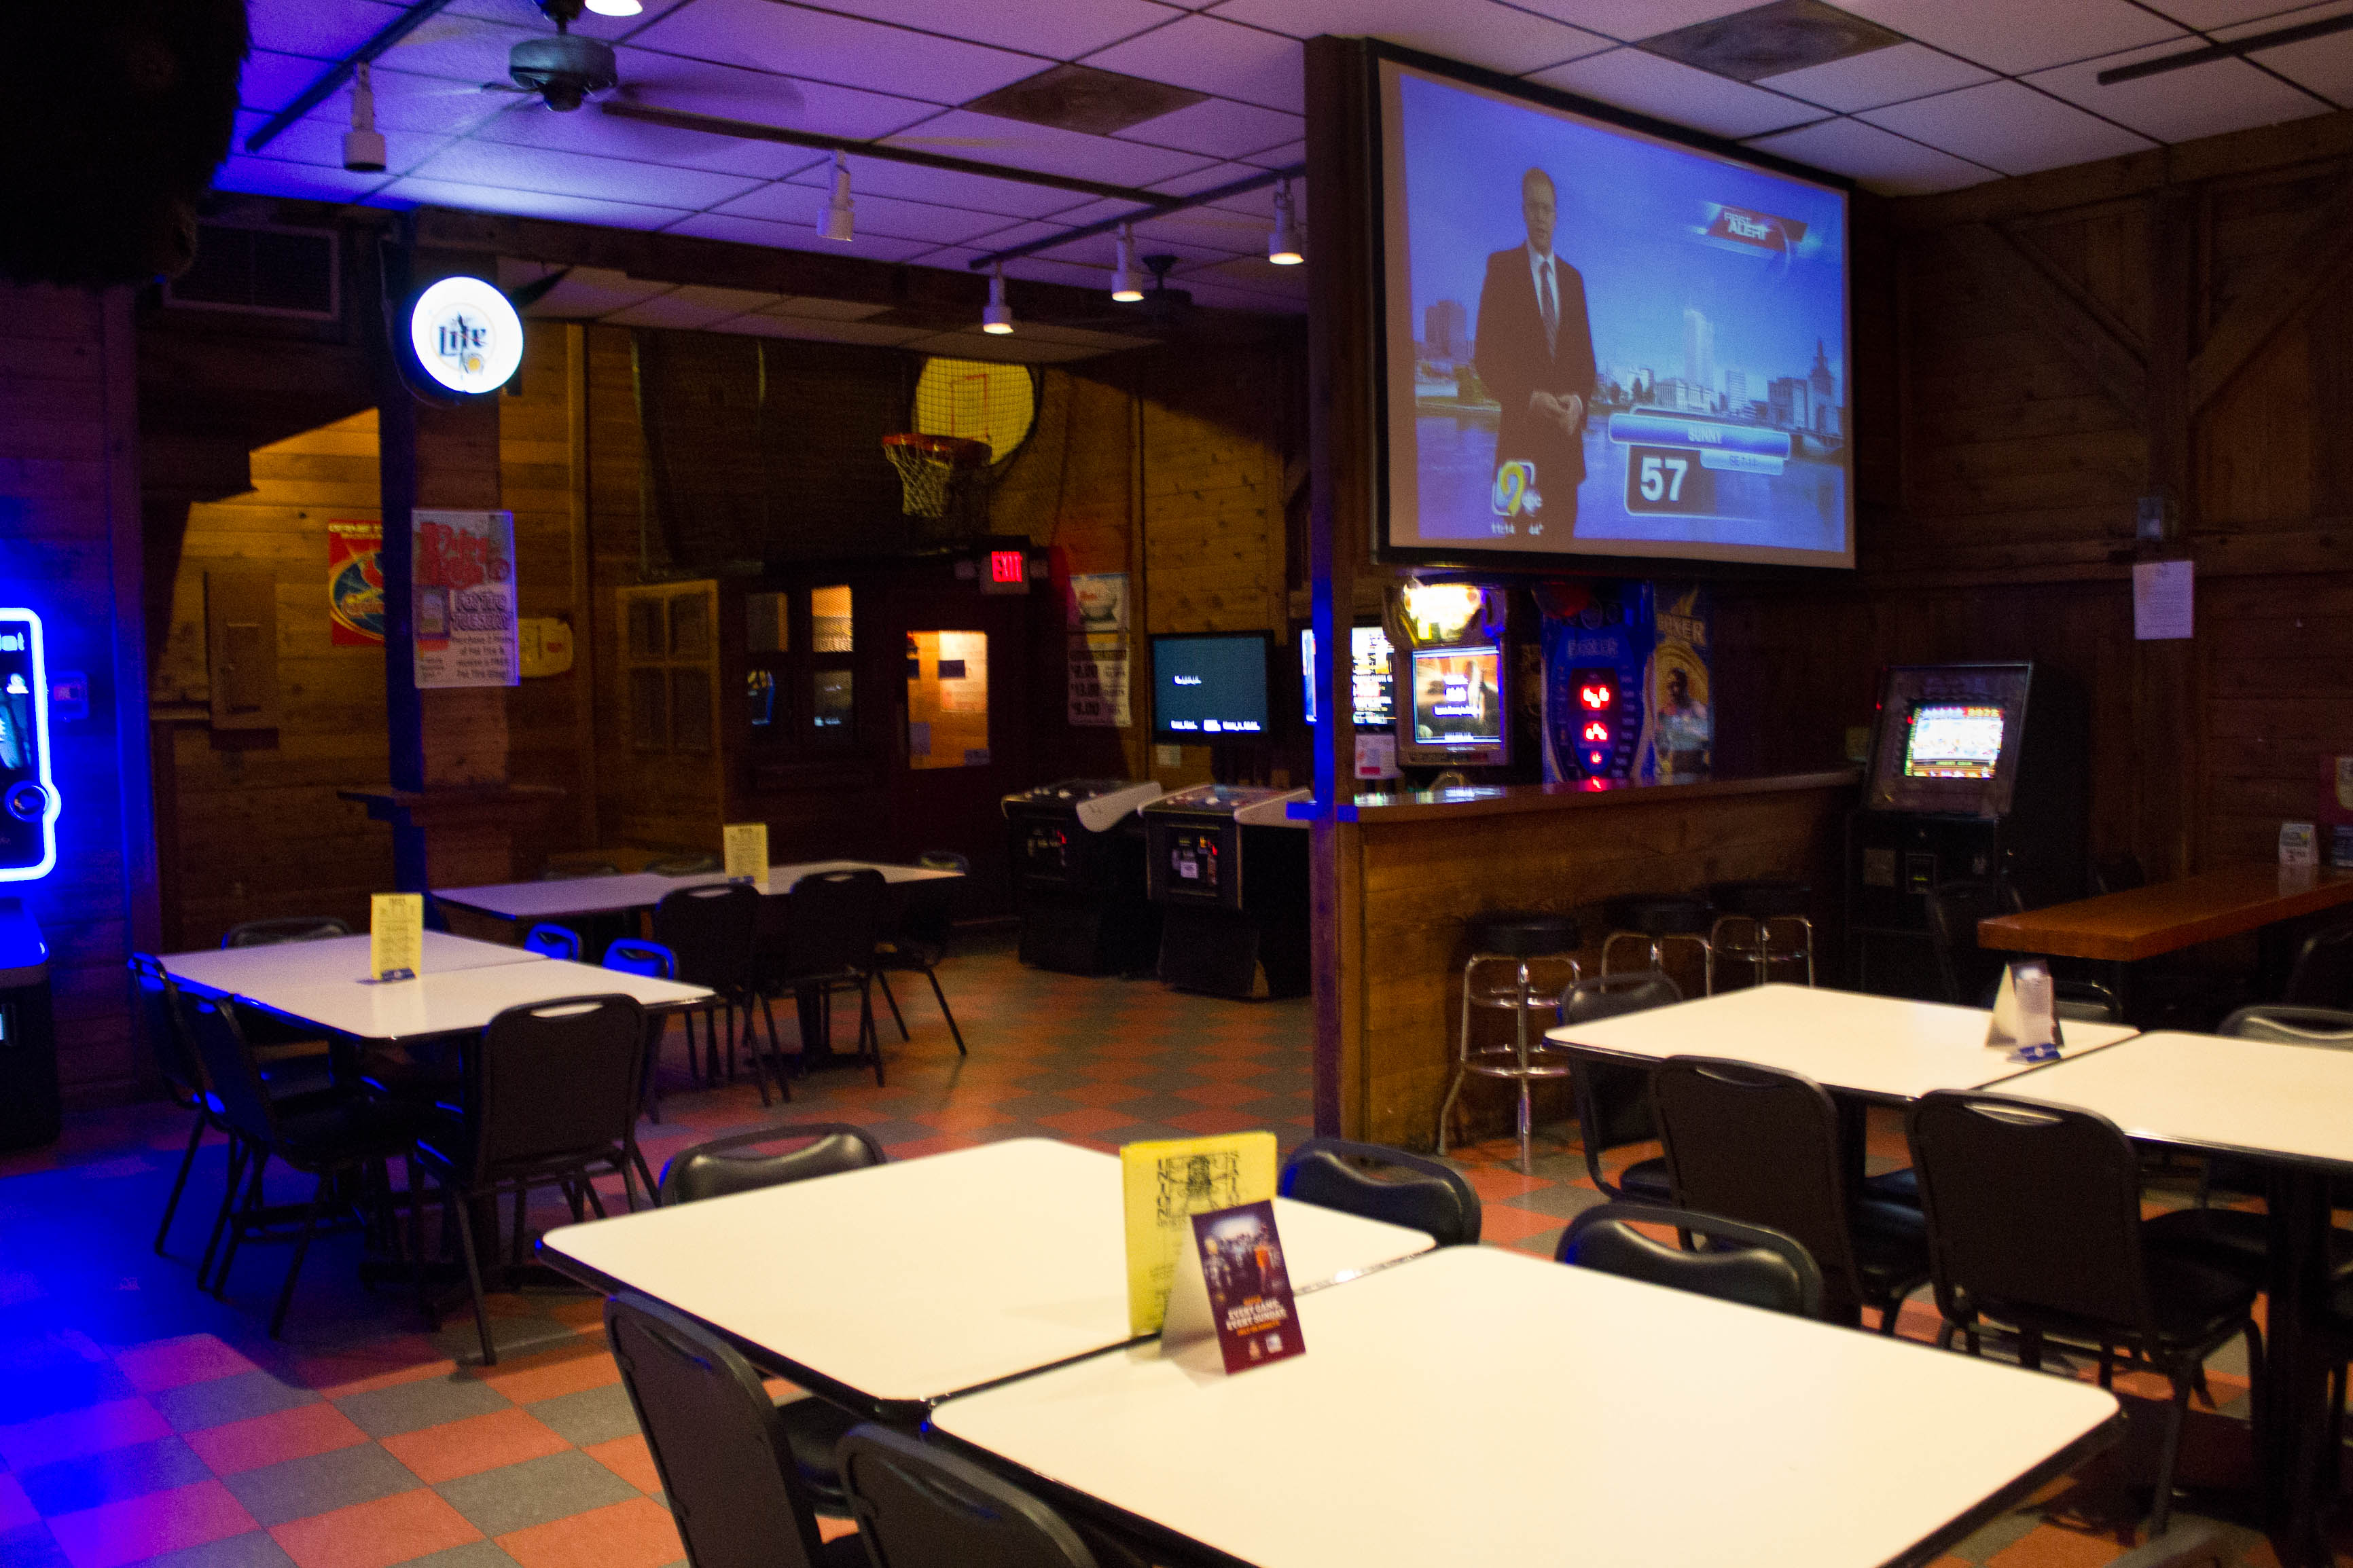 We Have Four Projection Style Screens And Plenty Of Pool Tables